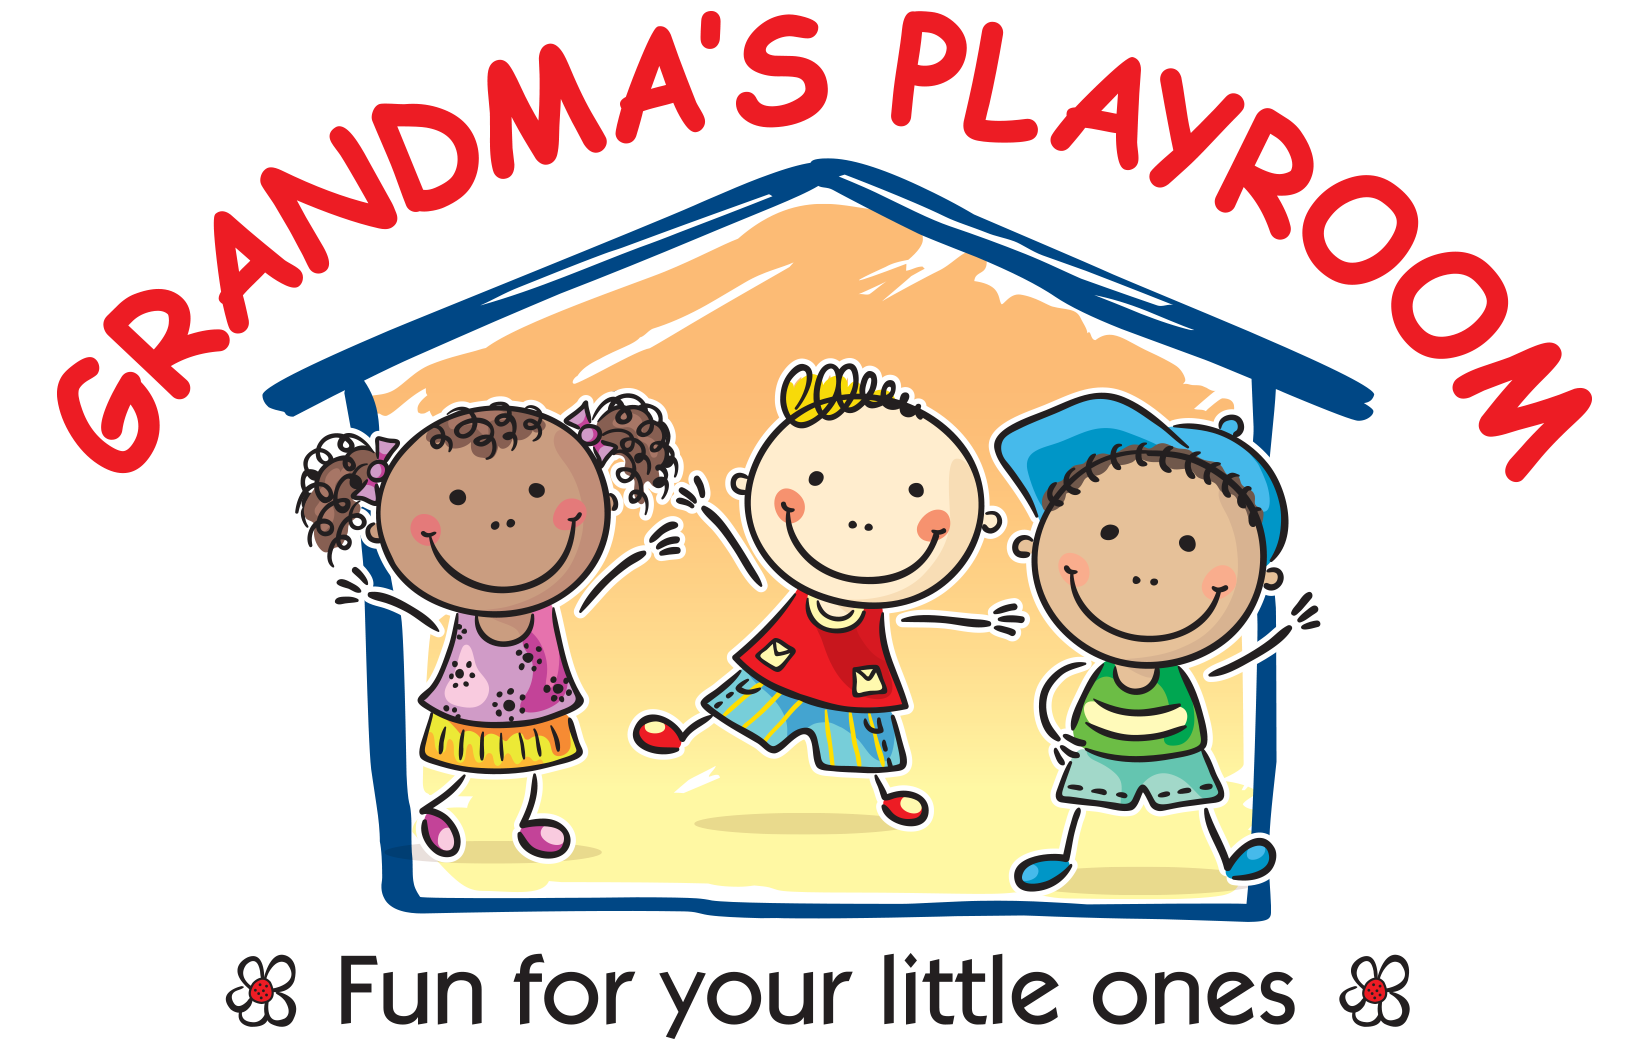 Children playing in the sun clipart clipart royalty free Home - Grandmas Playroom clipart royalty free